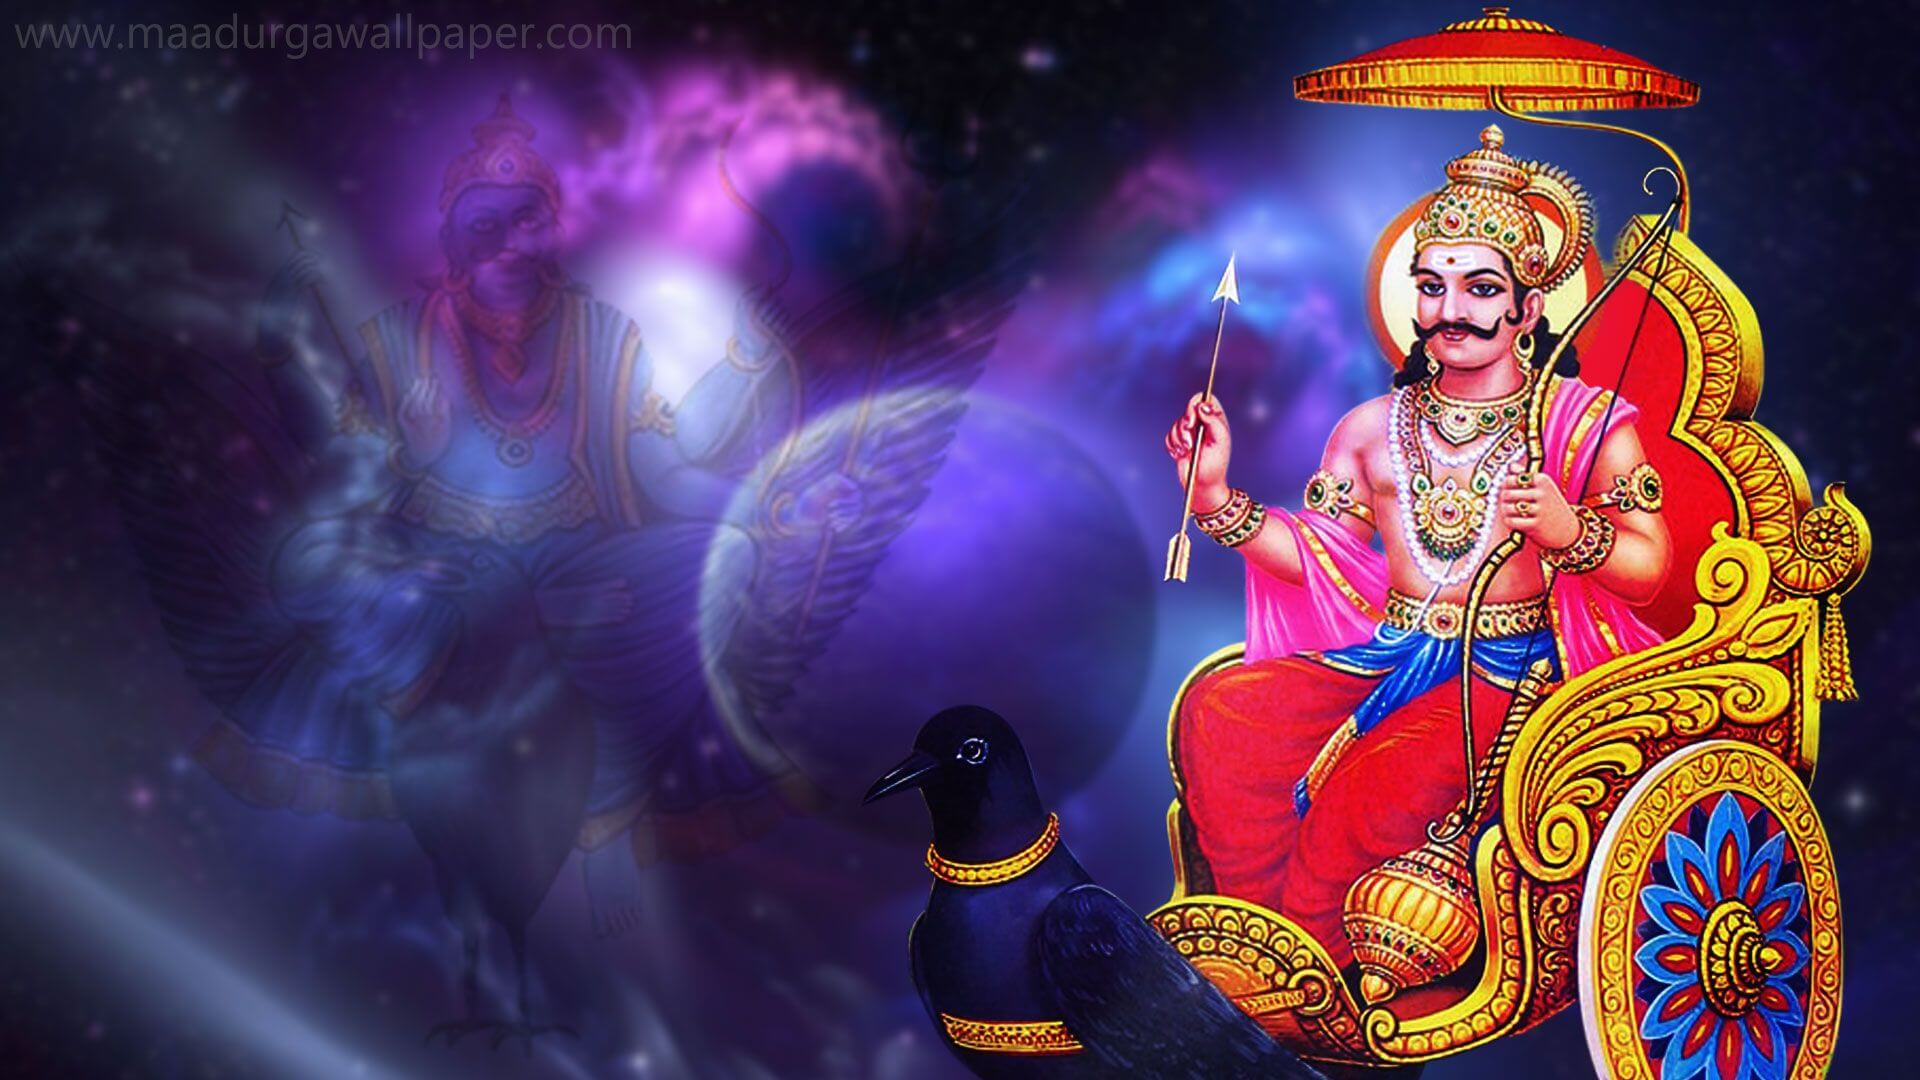 695+Images of Shani Dev | Download & Share | Whatsapp | Wallpaper